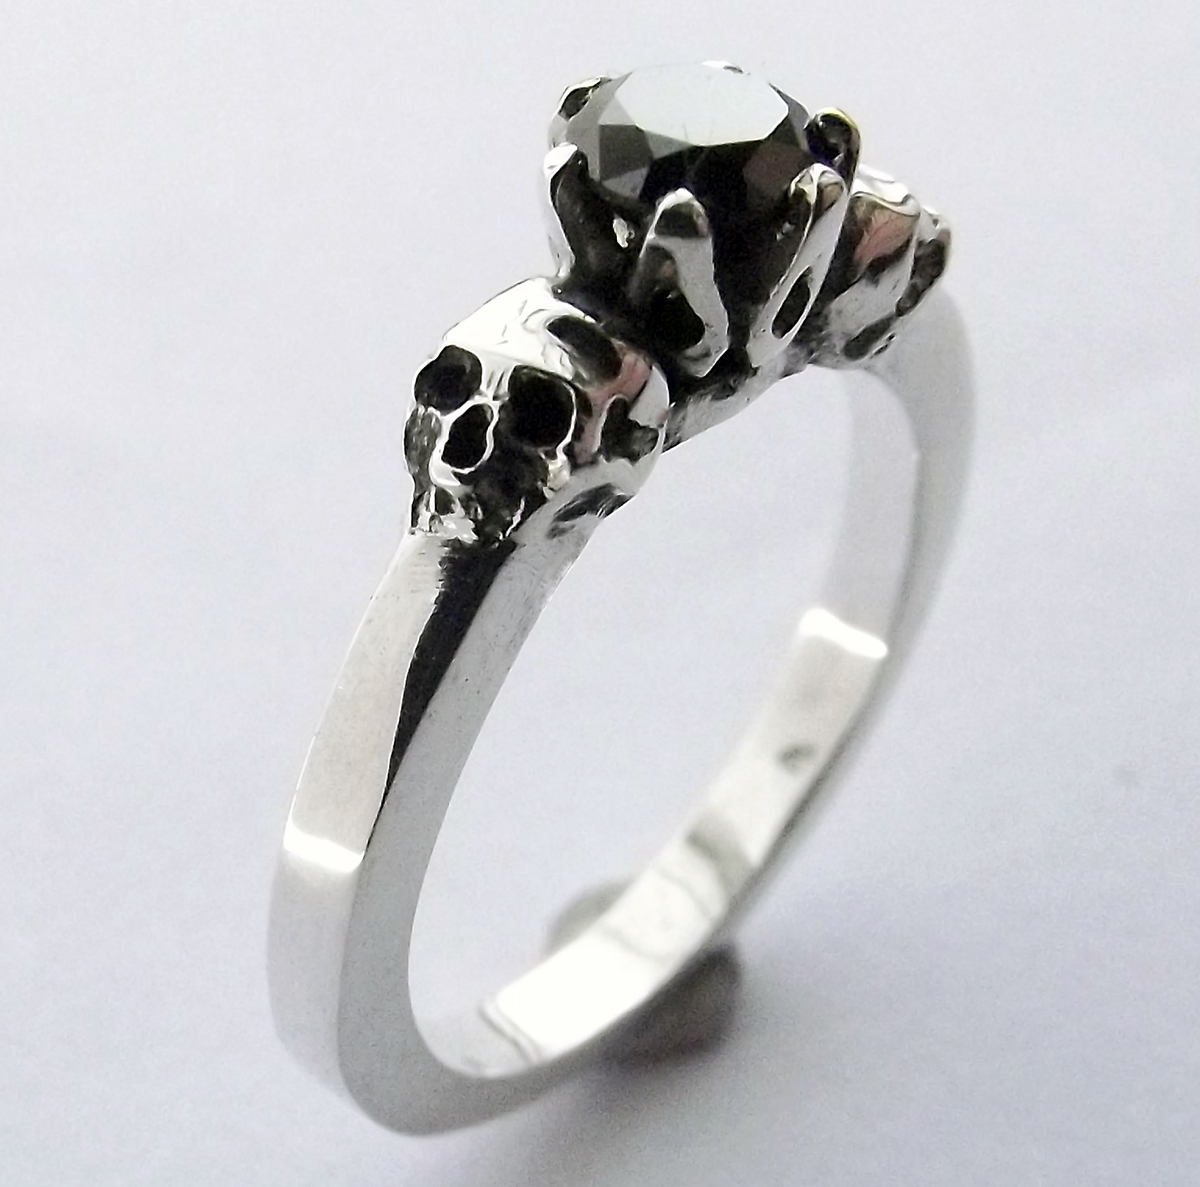 Skull Ring made by Dazzling Jewellers (1)